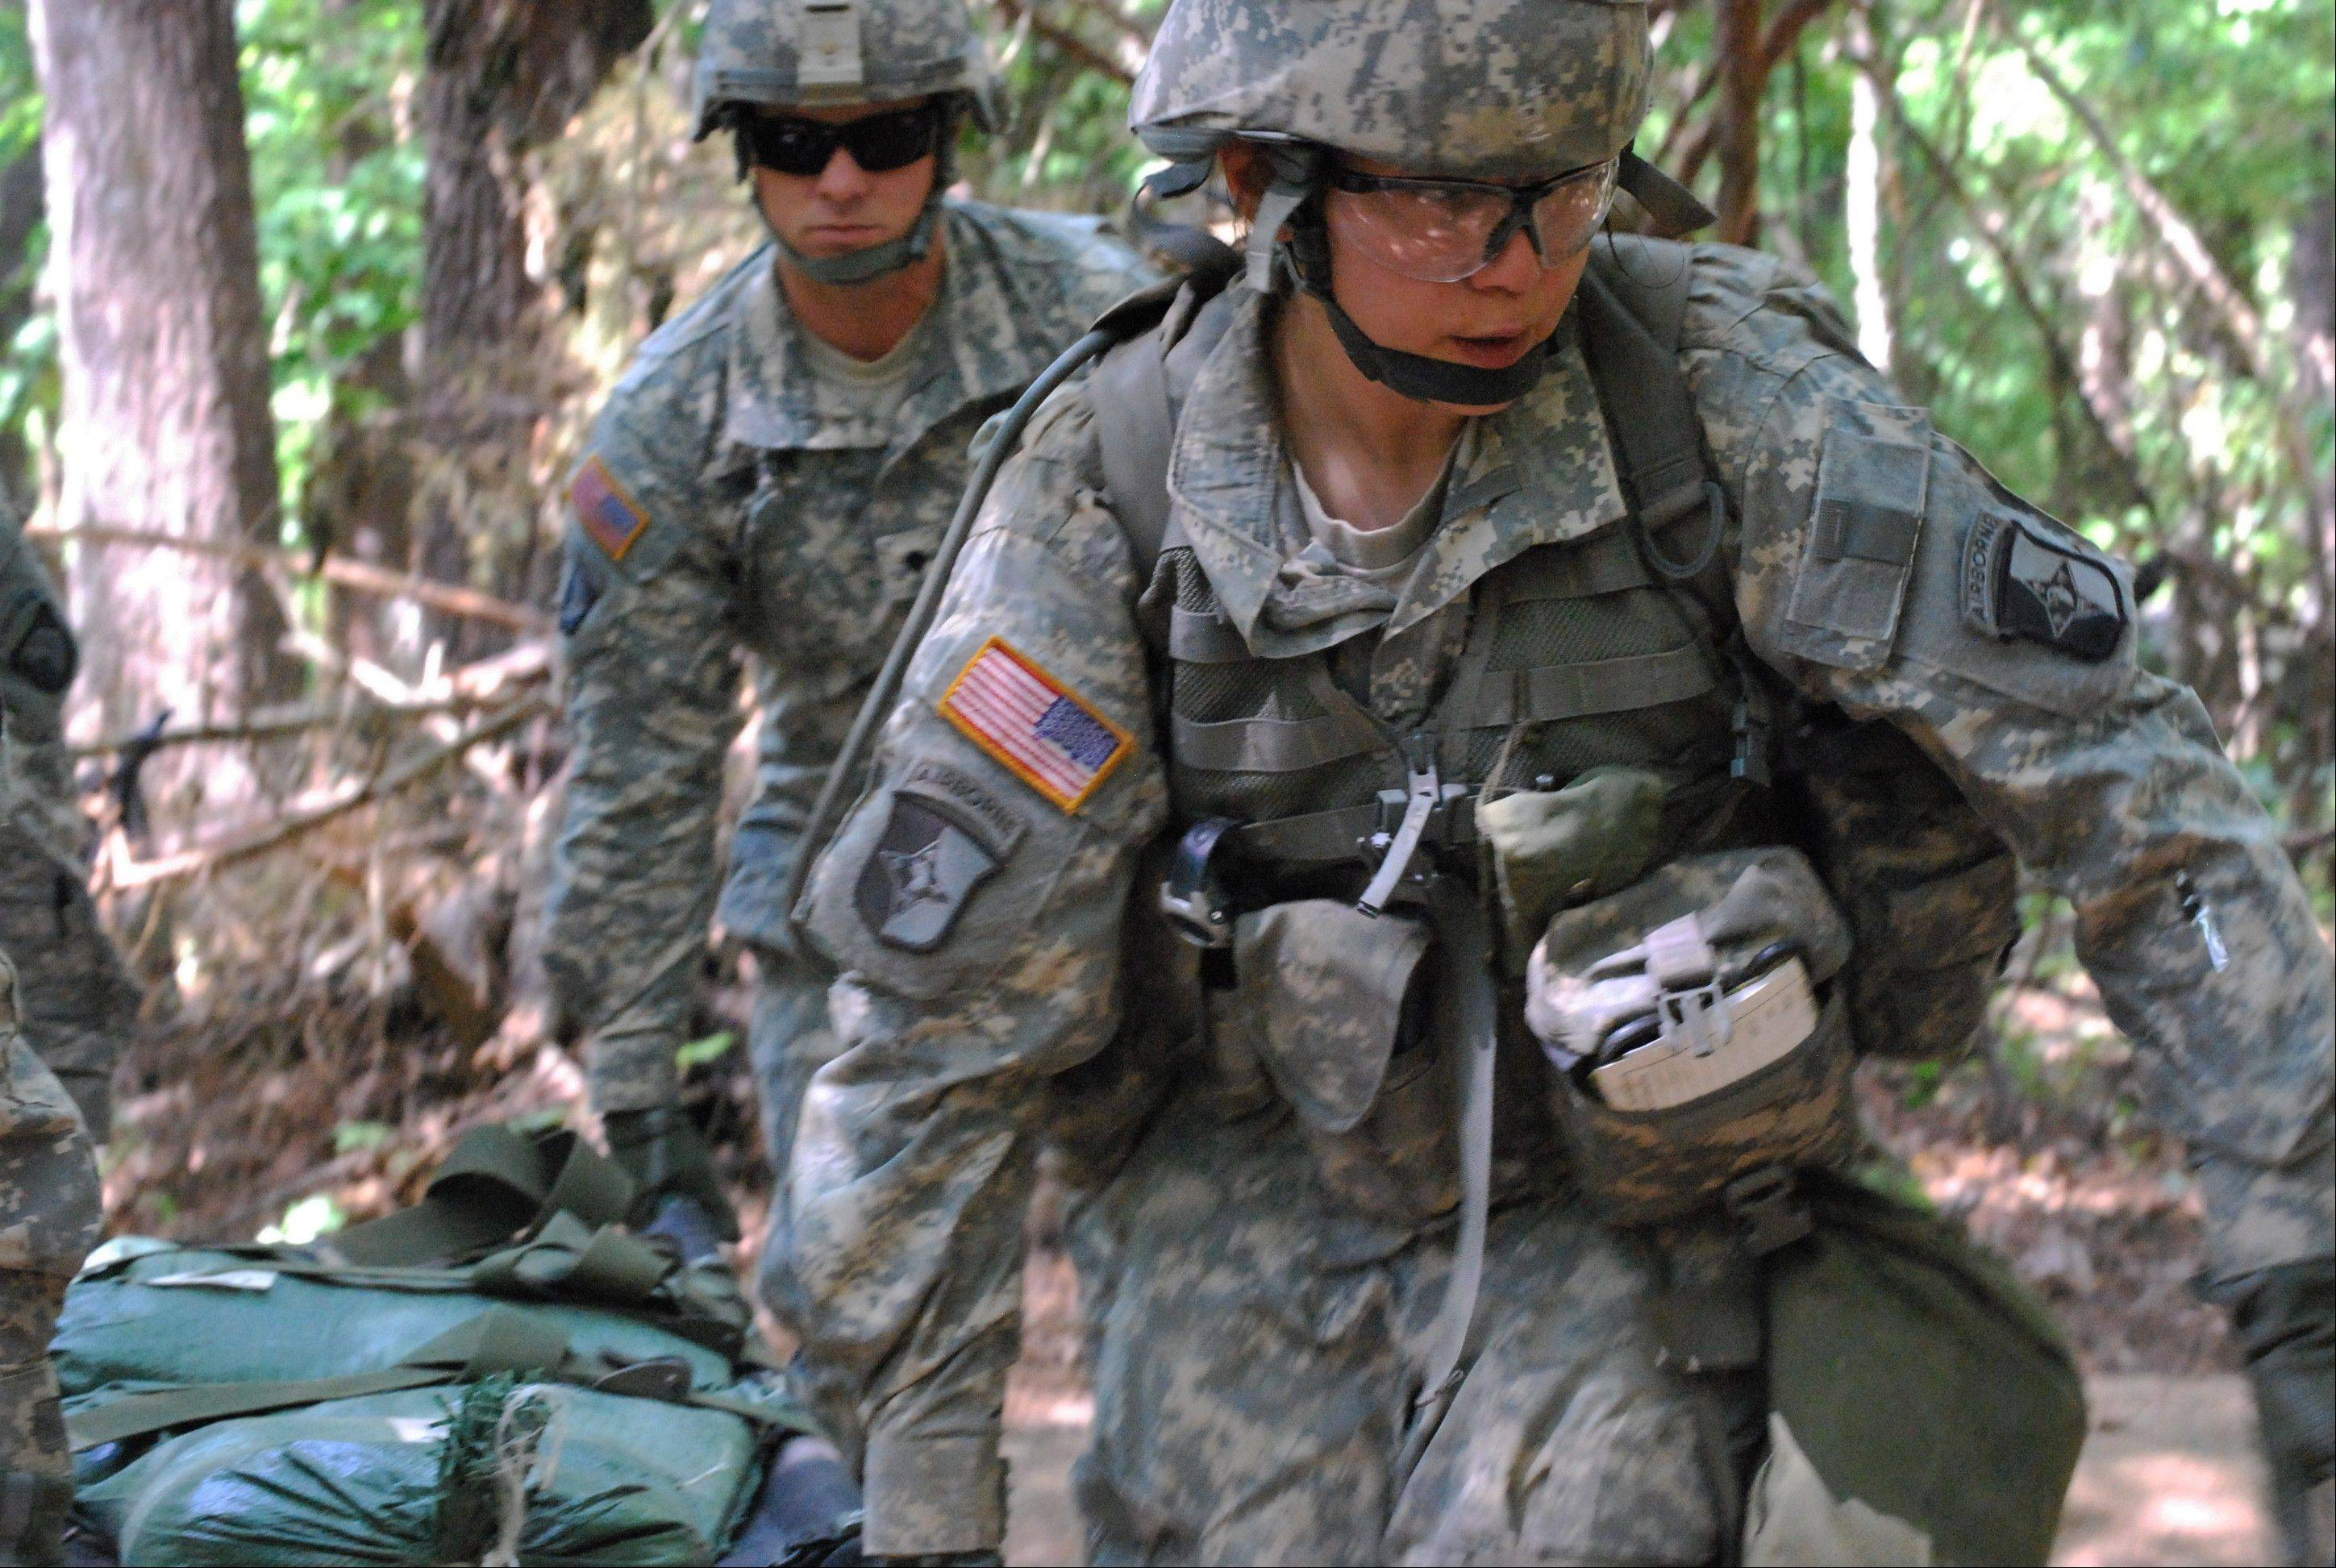 Capt. Sara Rodriguez, 26, of the 101st Airborne Division, carries a litter of sandbags during the Expert Field Medical Badge training at Fort Campbell, Ky. The Pentagon is lifting its ban on women serving in combat, opening hundreds of thousands of front-line positions and potentially elite commando jobs after generations of limits on their service, defense officials said Wednesday.